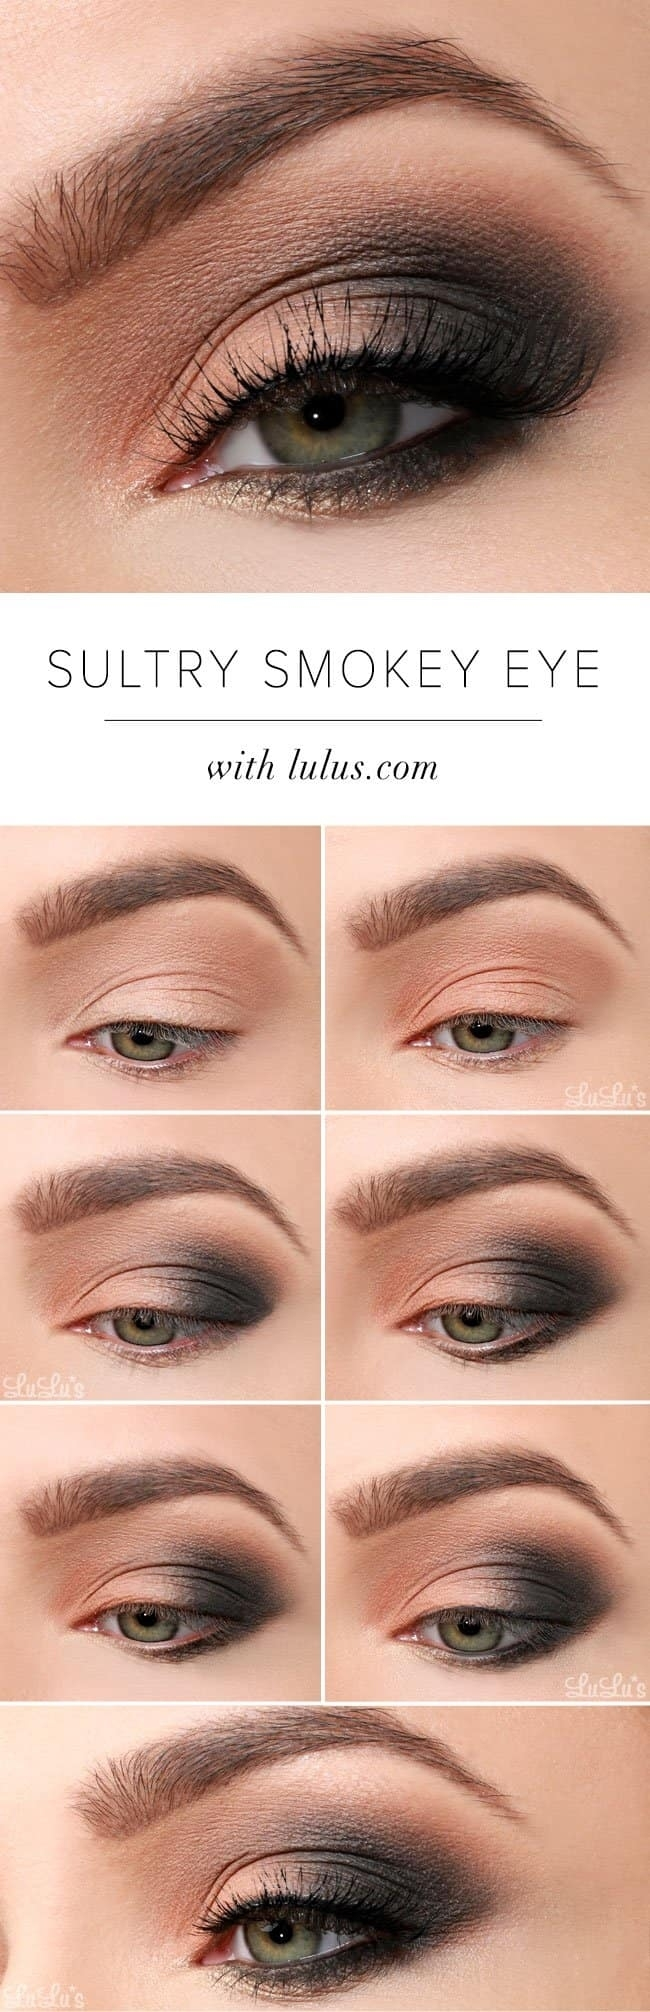 15 Smokey Eye Tutorials - Step By Step Guide To Perfect regarding Smokey Eye Makeup Instructions With Pictures